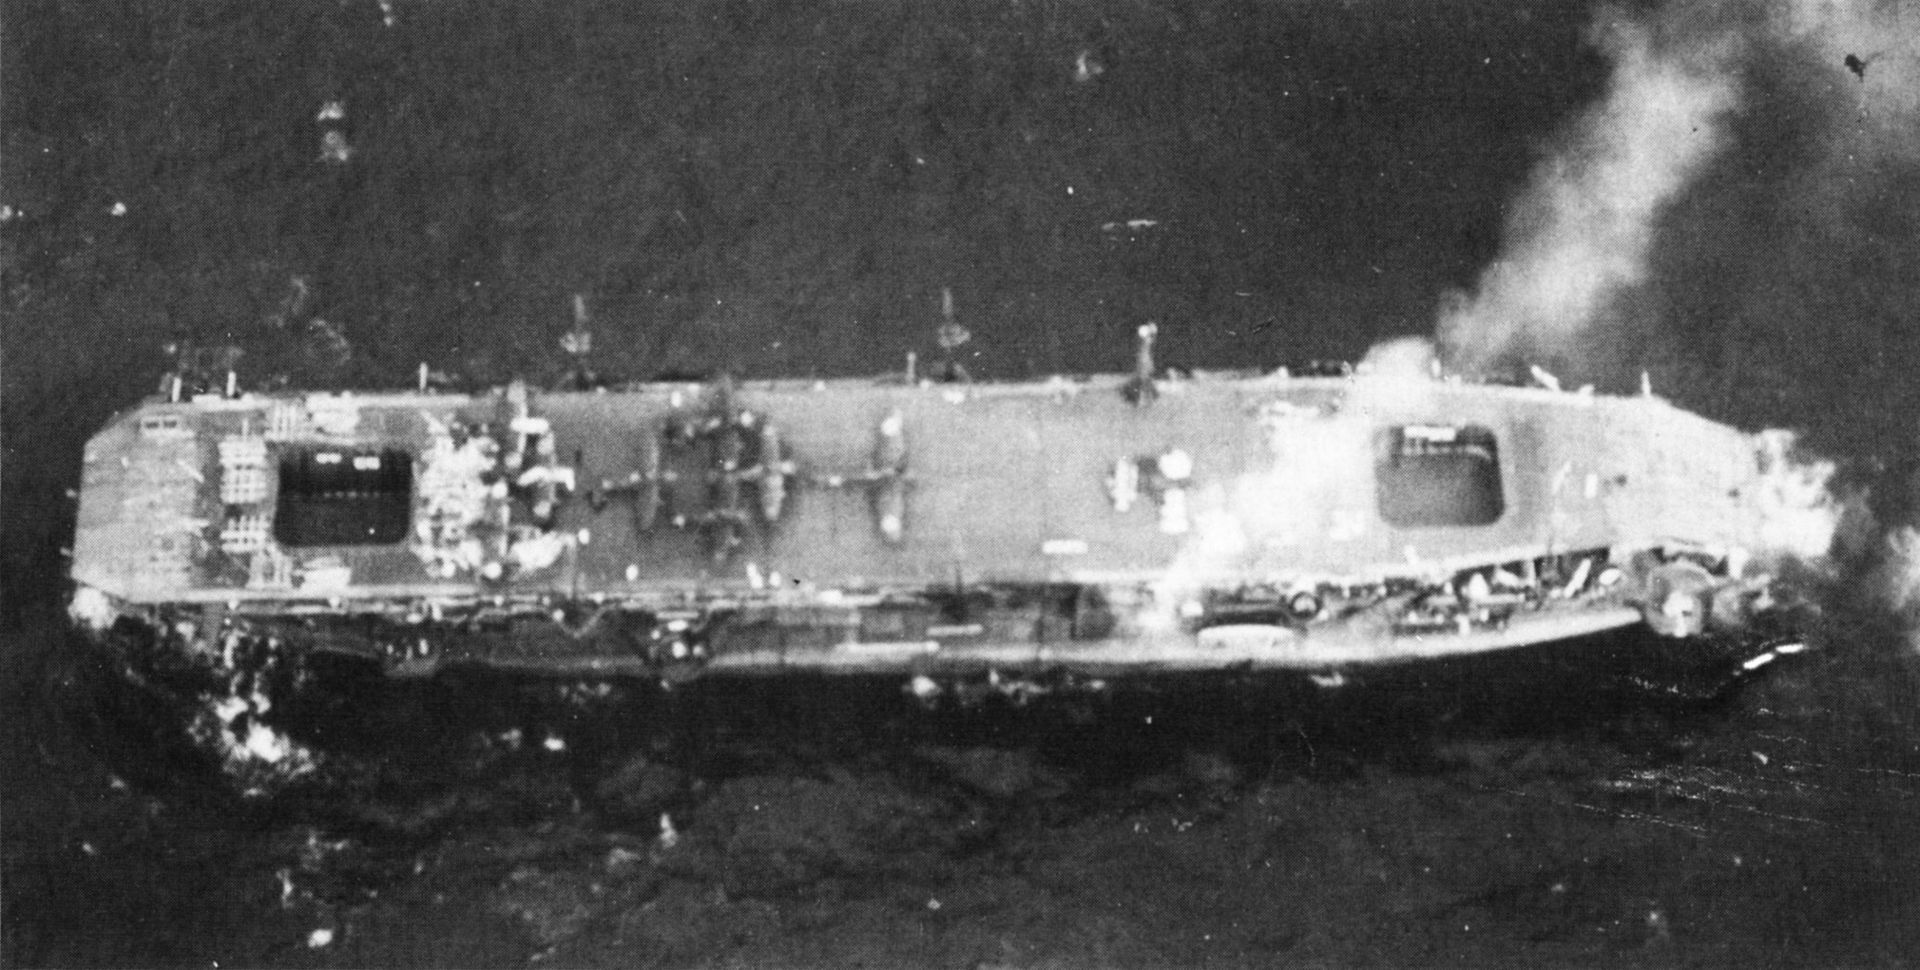 Escort carrier Chuyo after being torpedoed  by American submarine.